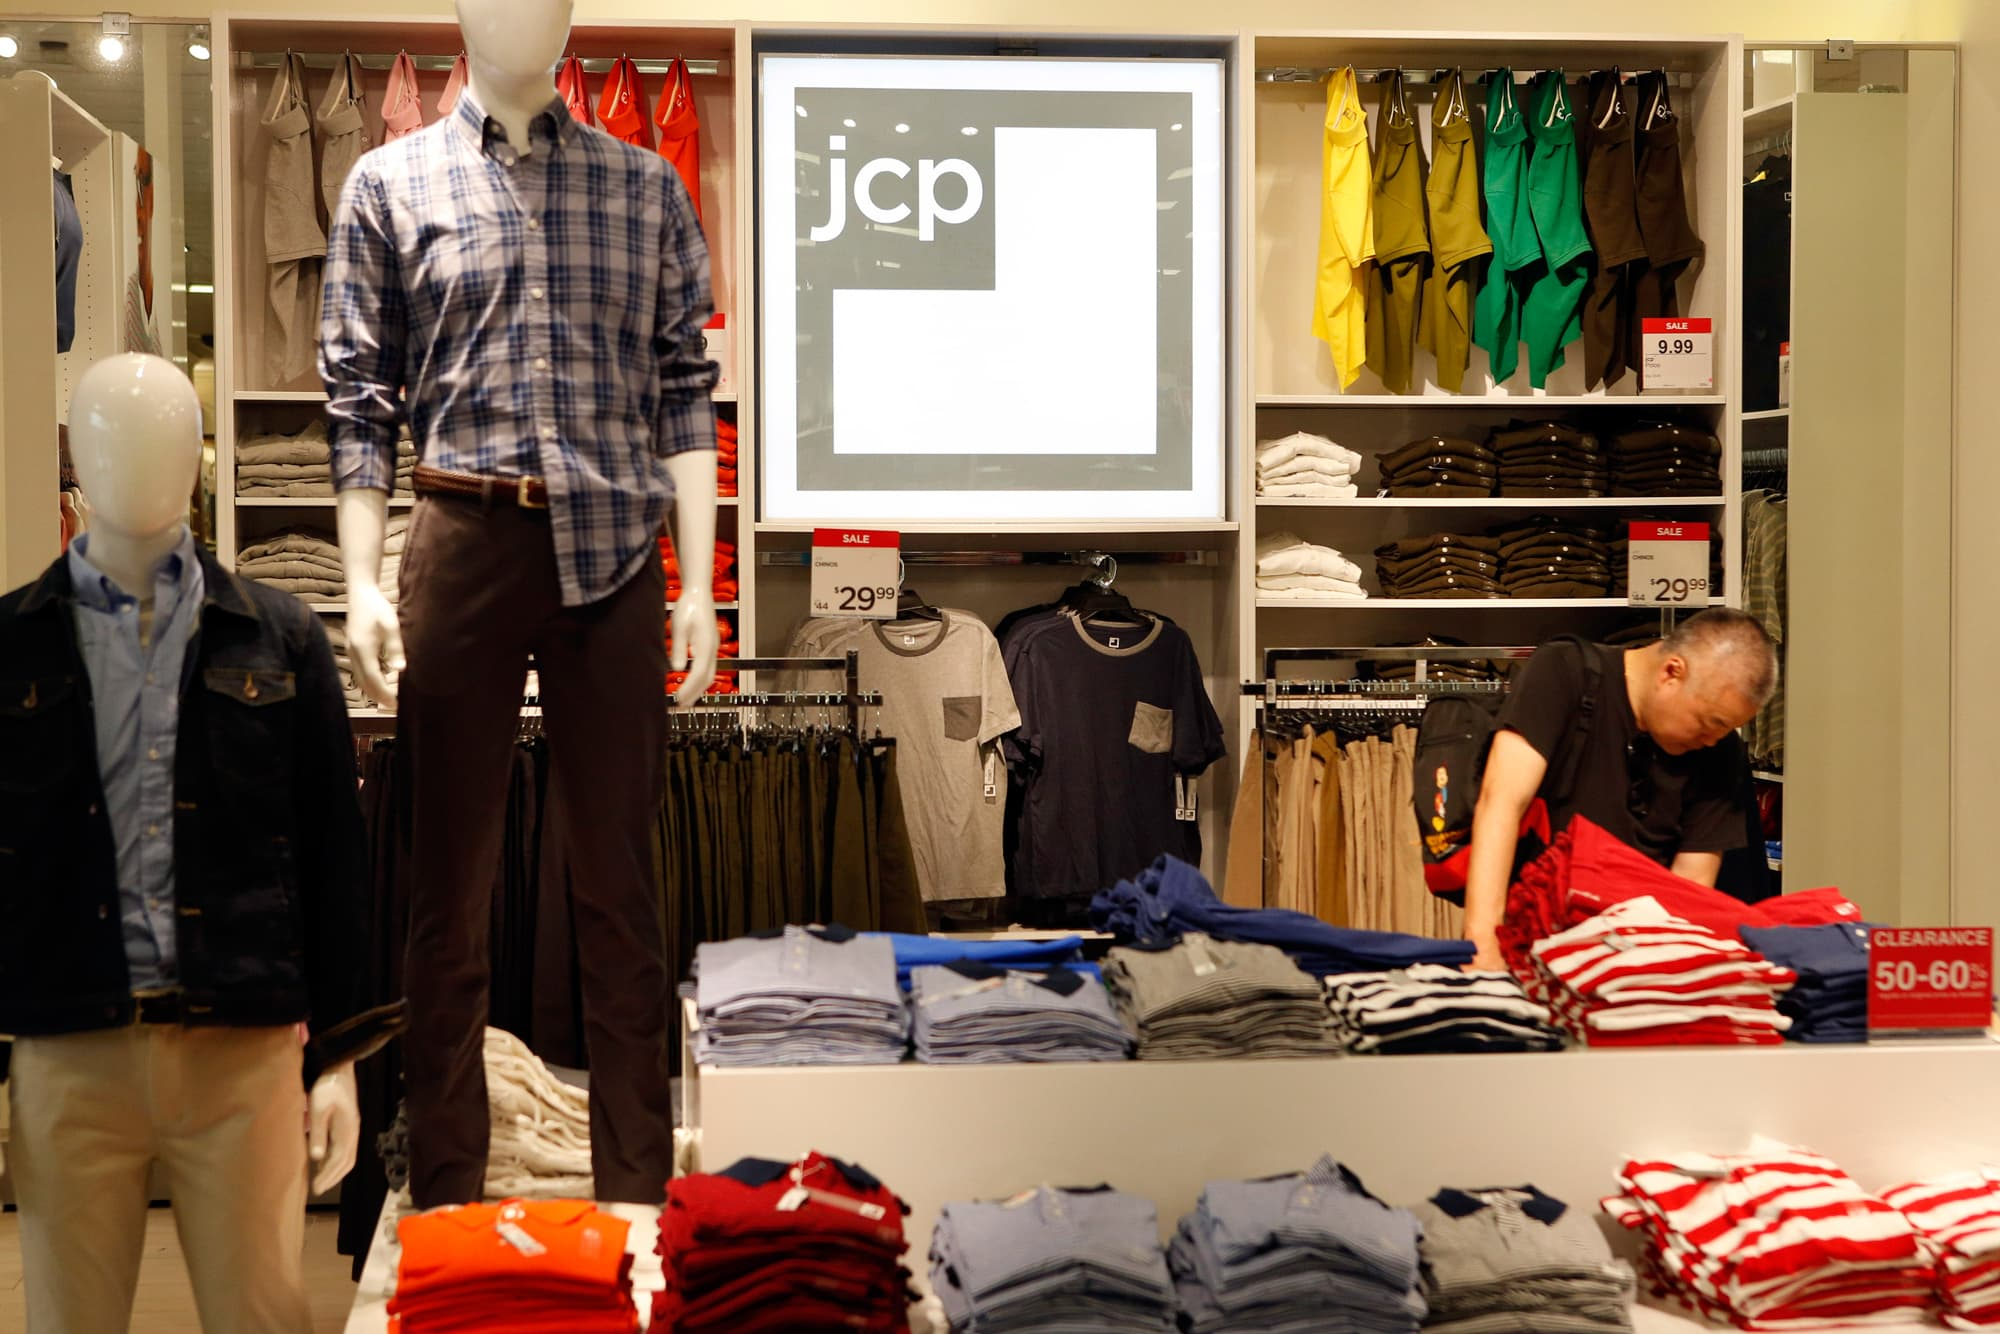 Here's why the biggest U.S. mall owner might want to buy JC Penney